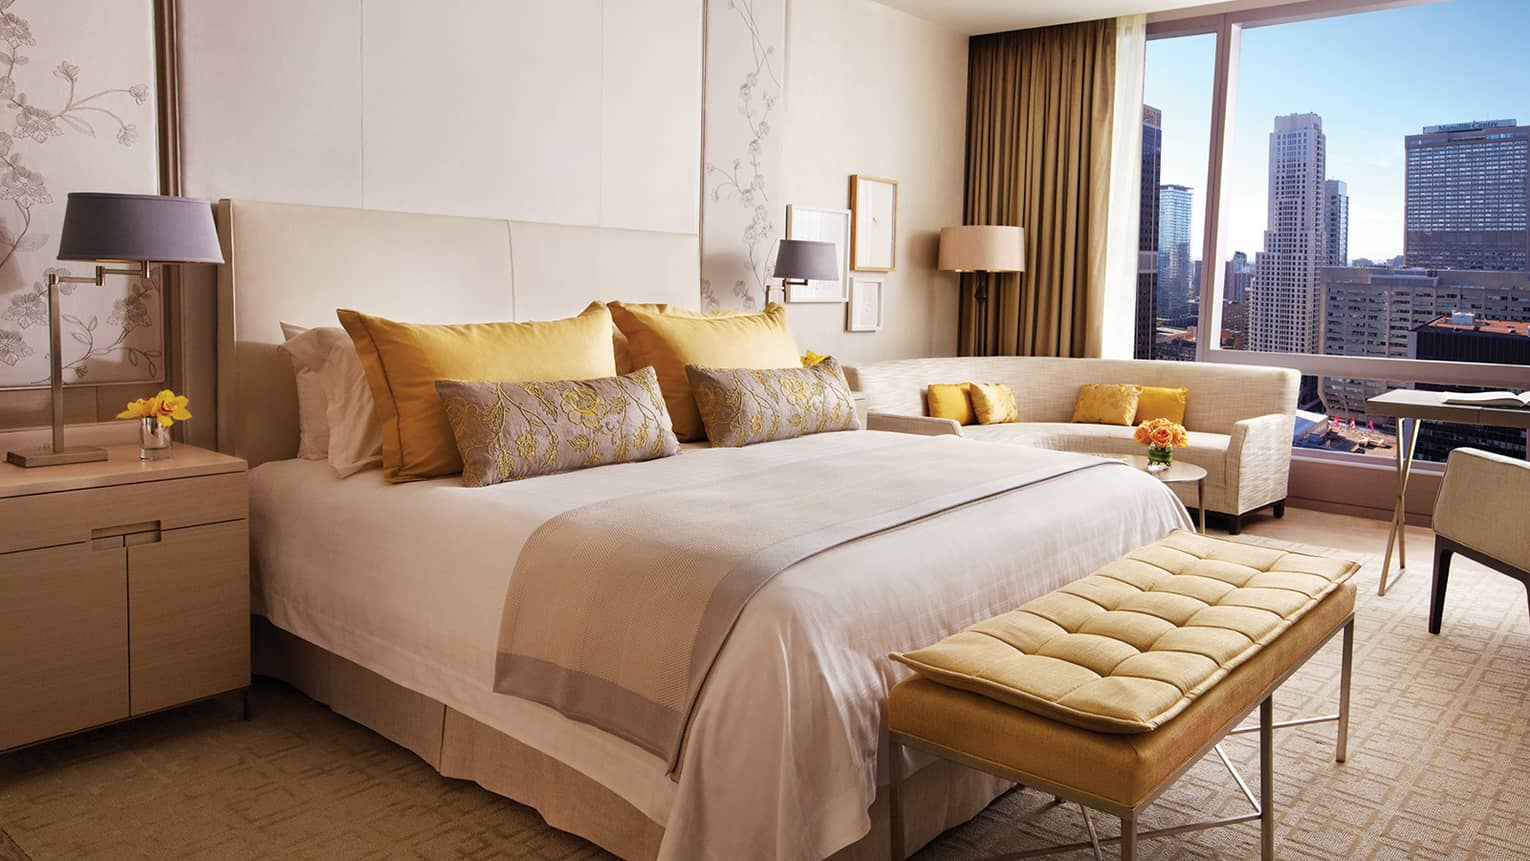 Plush yellow bench at foot of bed with yellow, gold pillows by curved loveseat, window